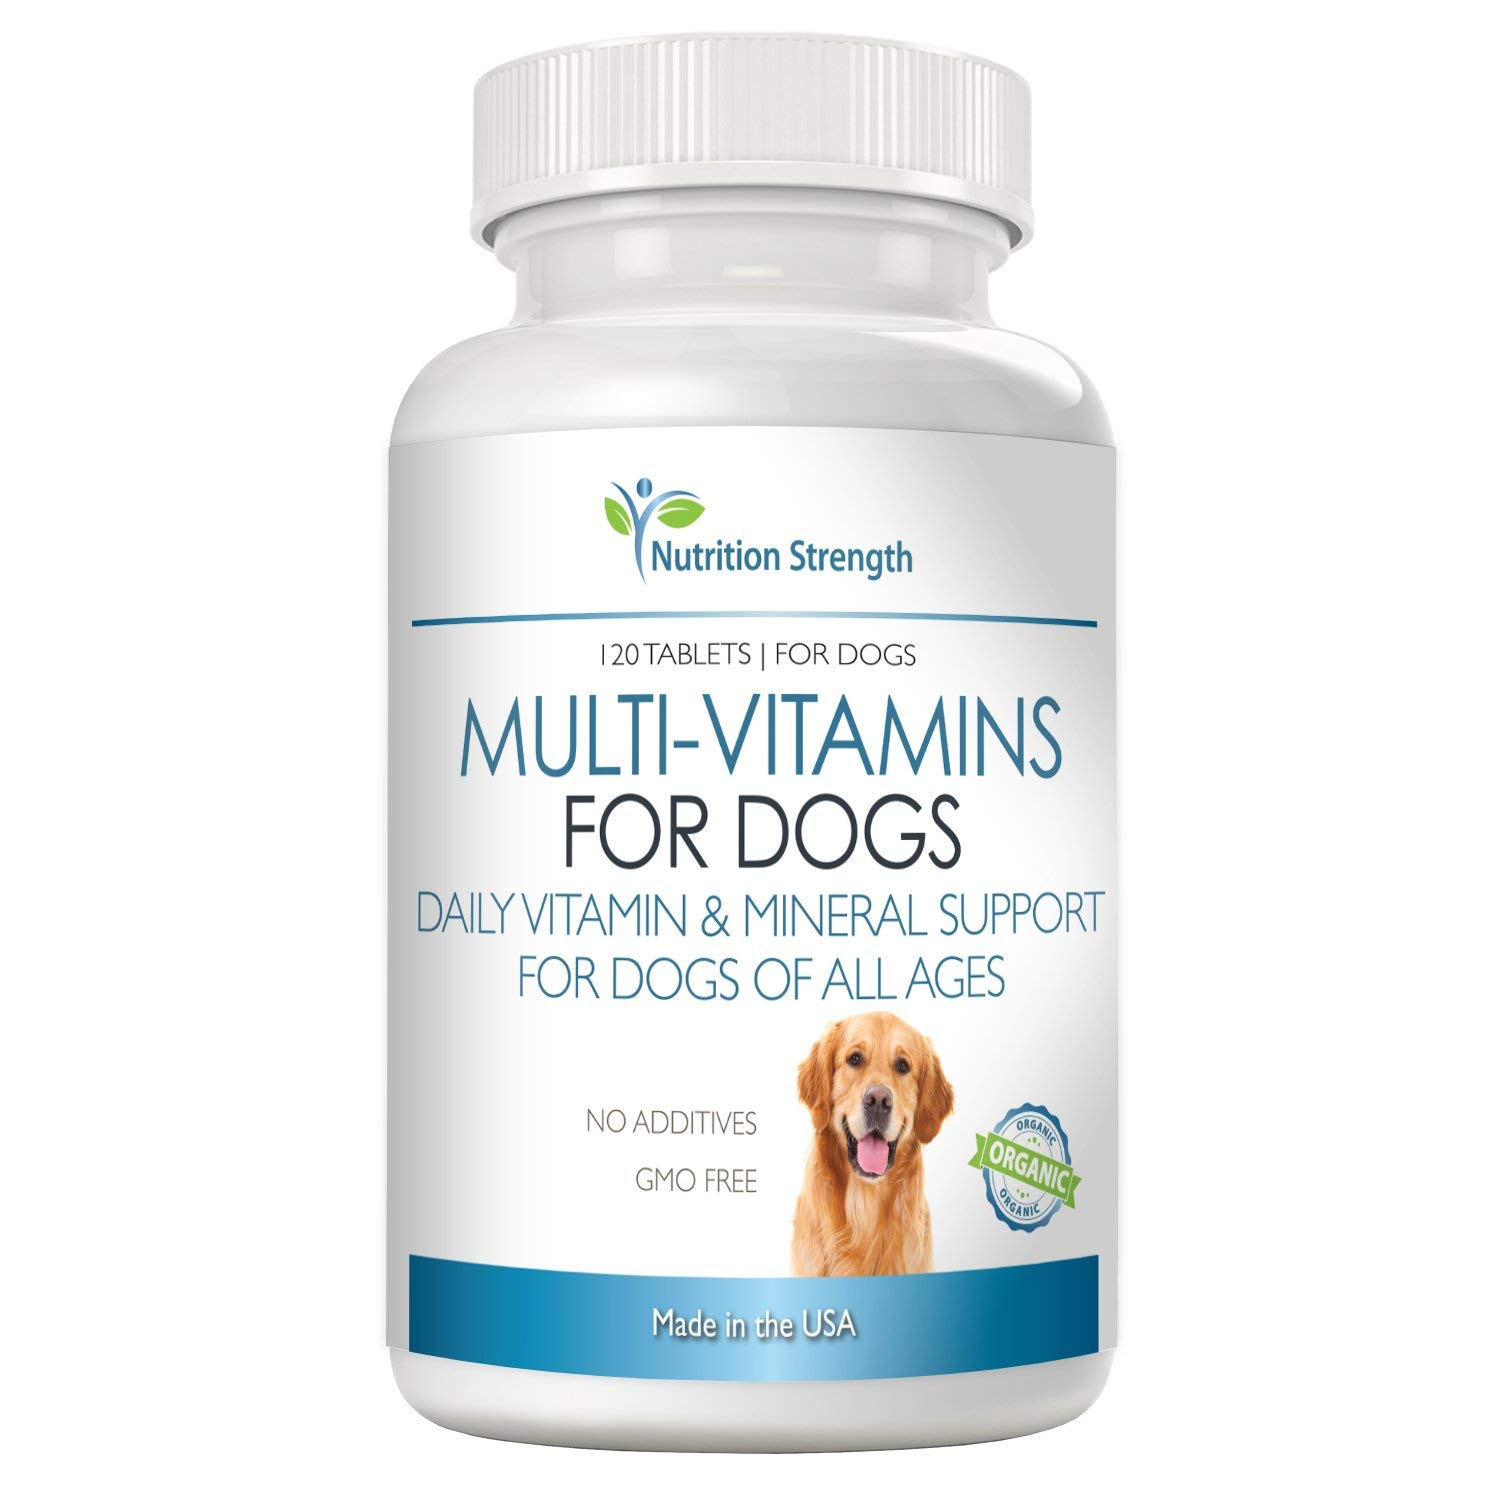 Nutrition Strength Organic Multivitamins for Dogs, Nutritional Supplements, Daily Vitamin and Mineral Support, 120 Chewable Tablets